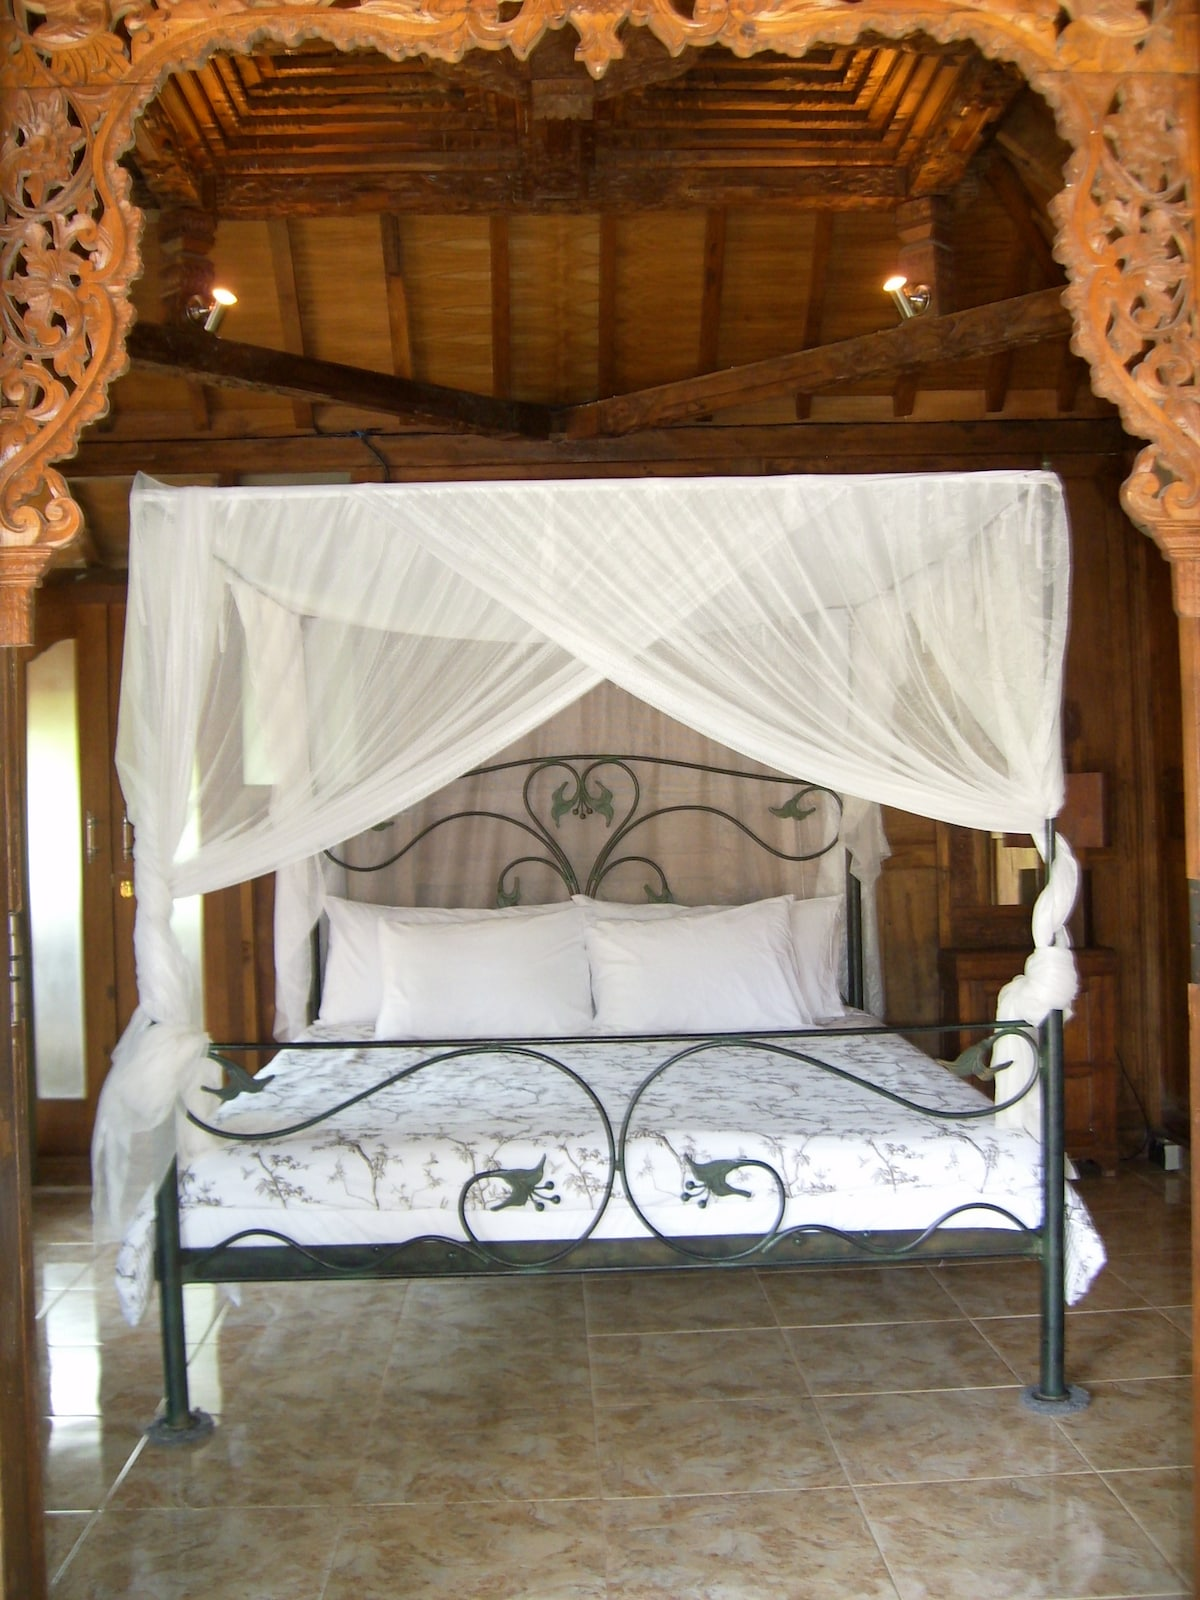 The romance of sleeping under a netting...with a beautiful carved ceiling to see in the soft light.